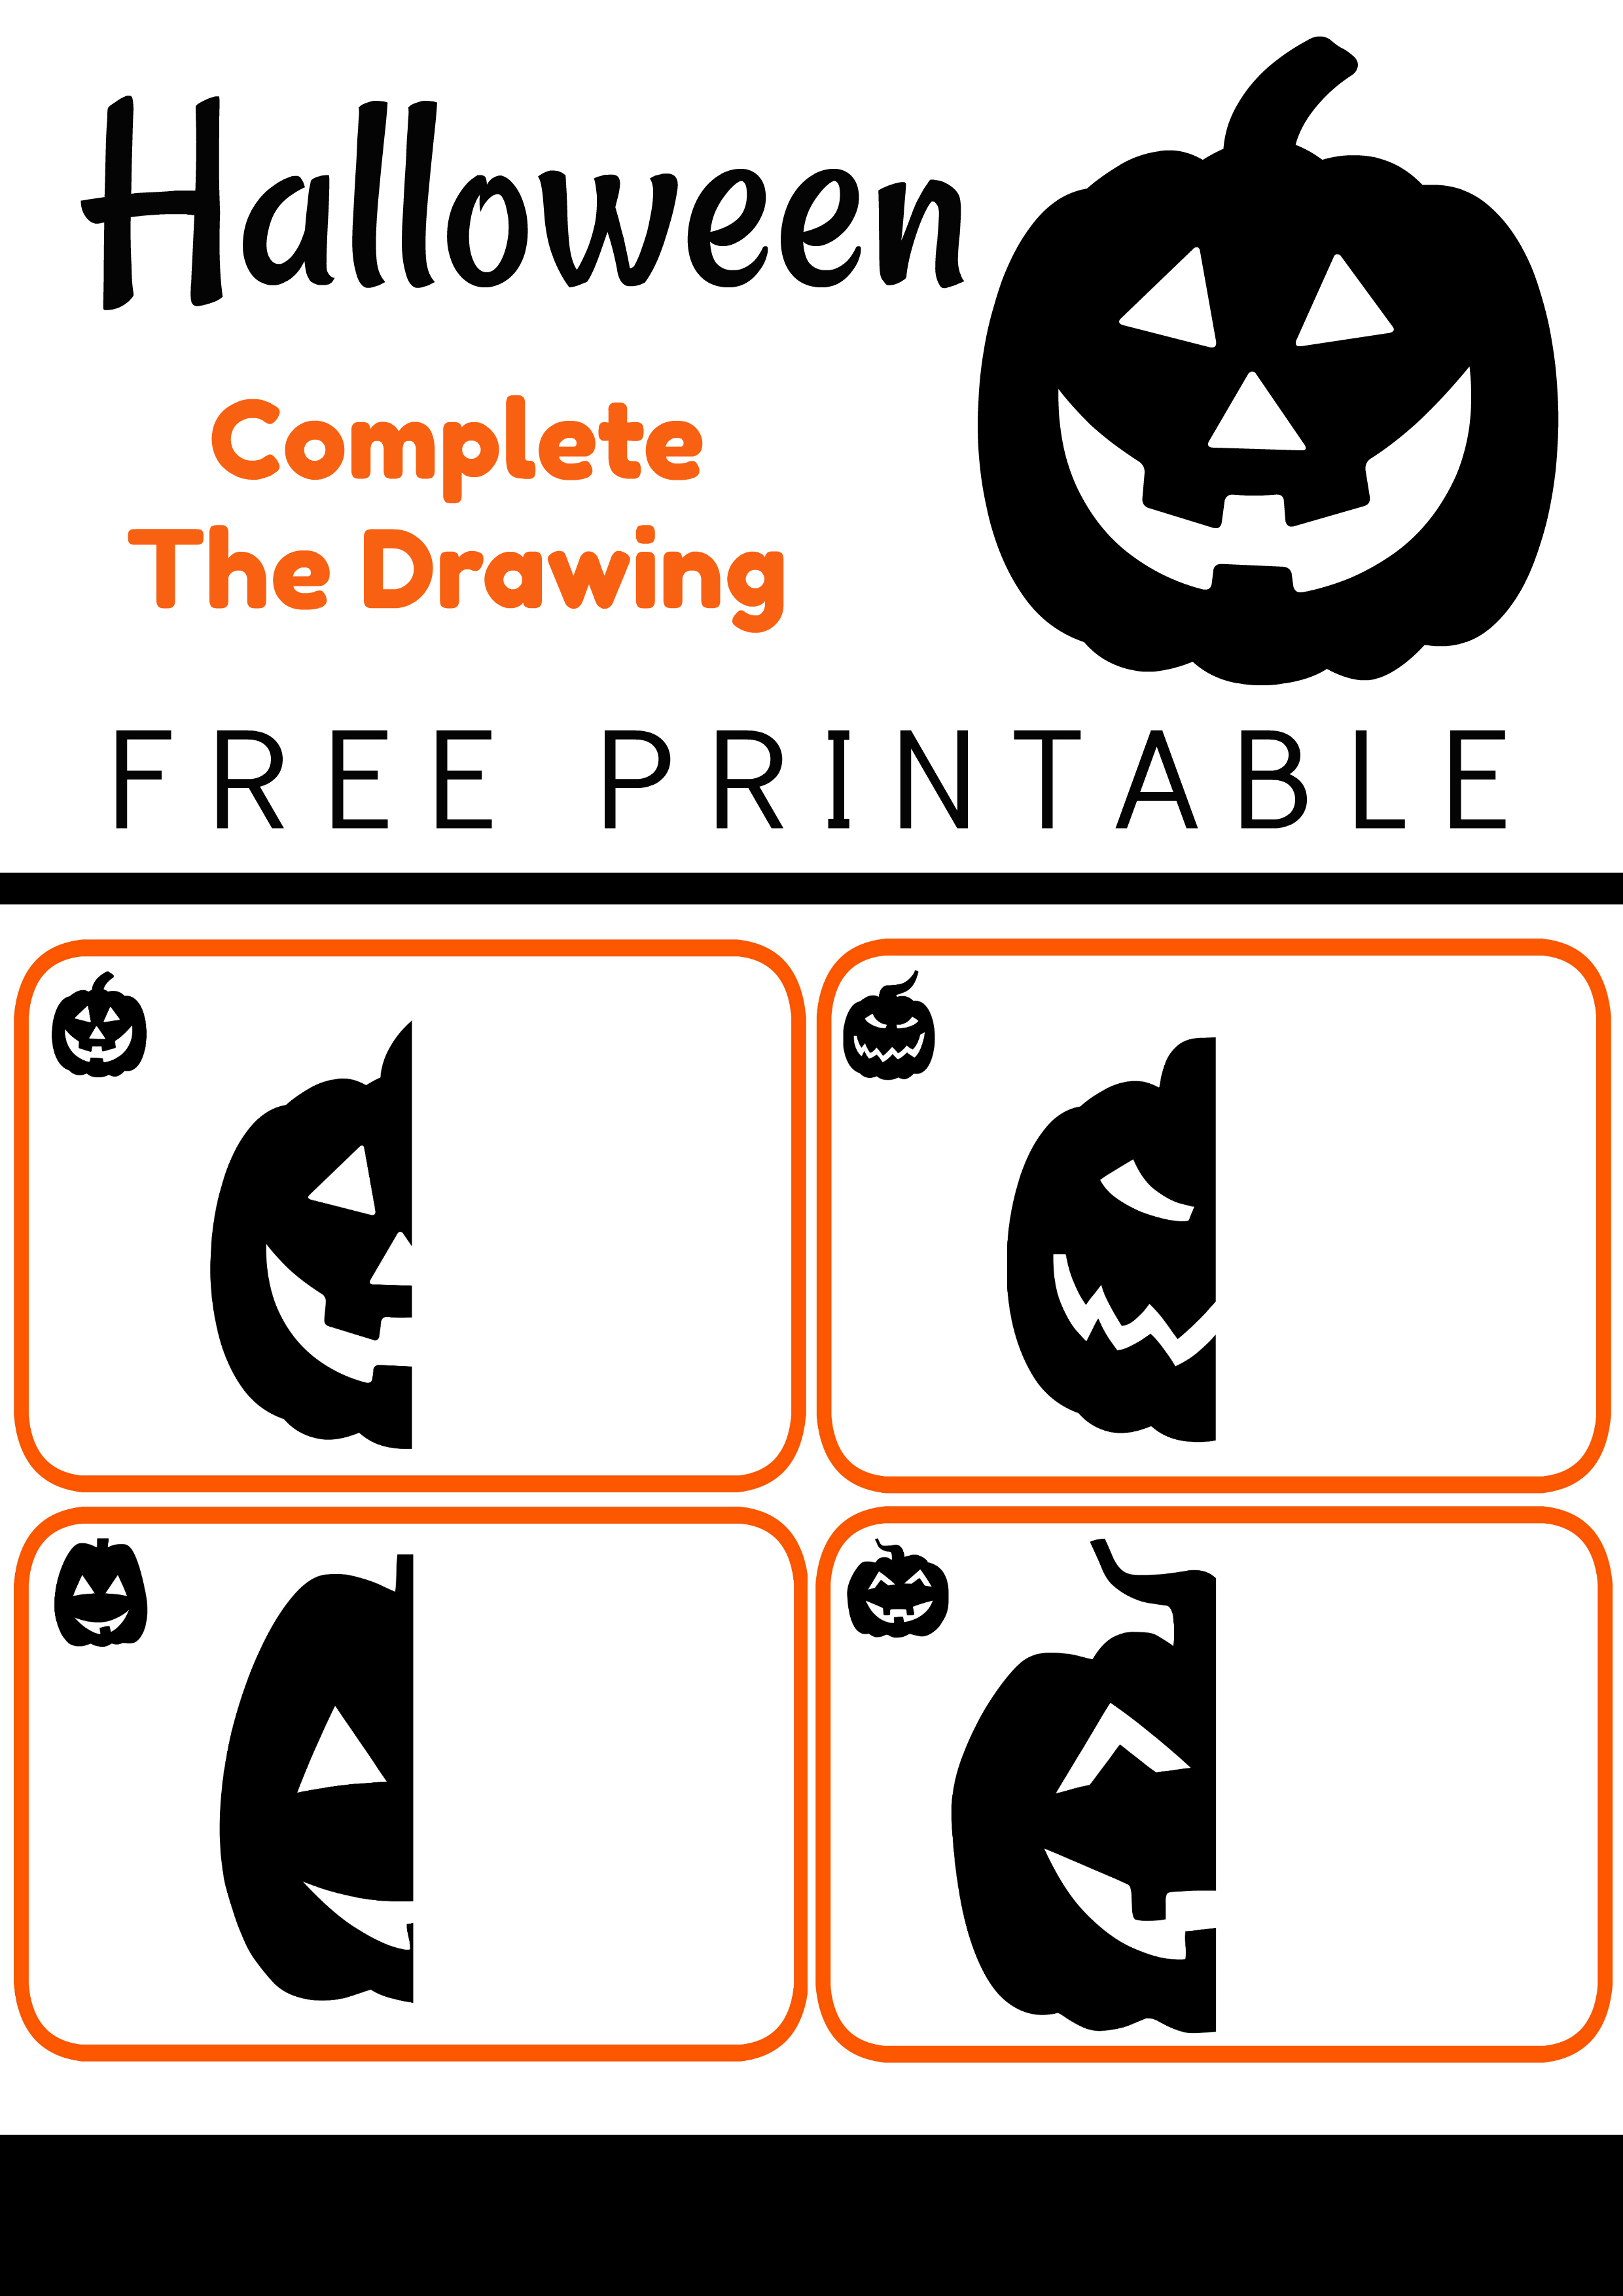 Free Halloween Printable Complete the Drawing Jack O Lanterns